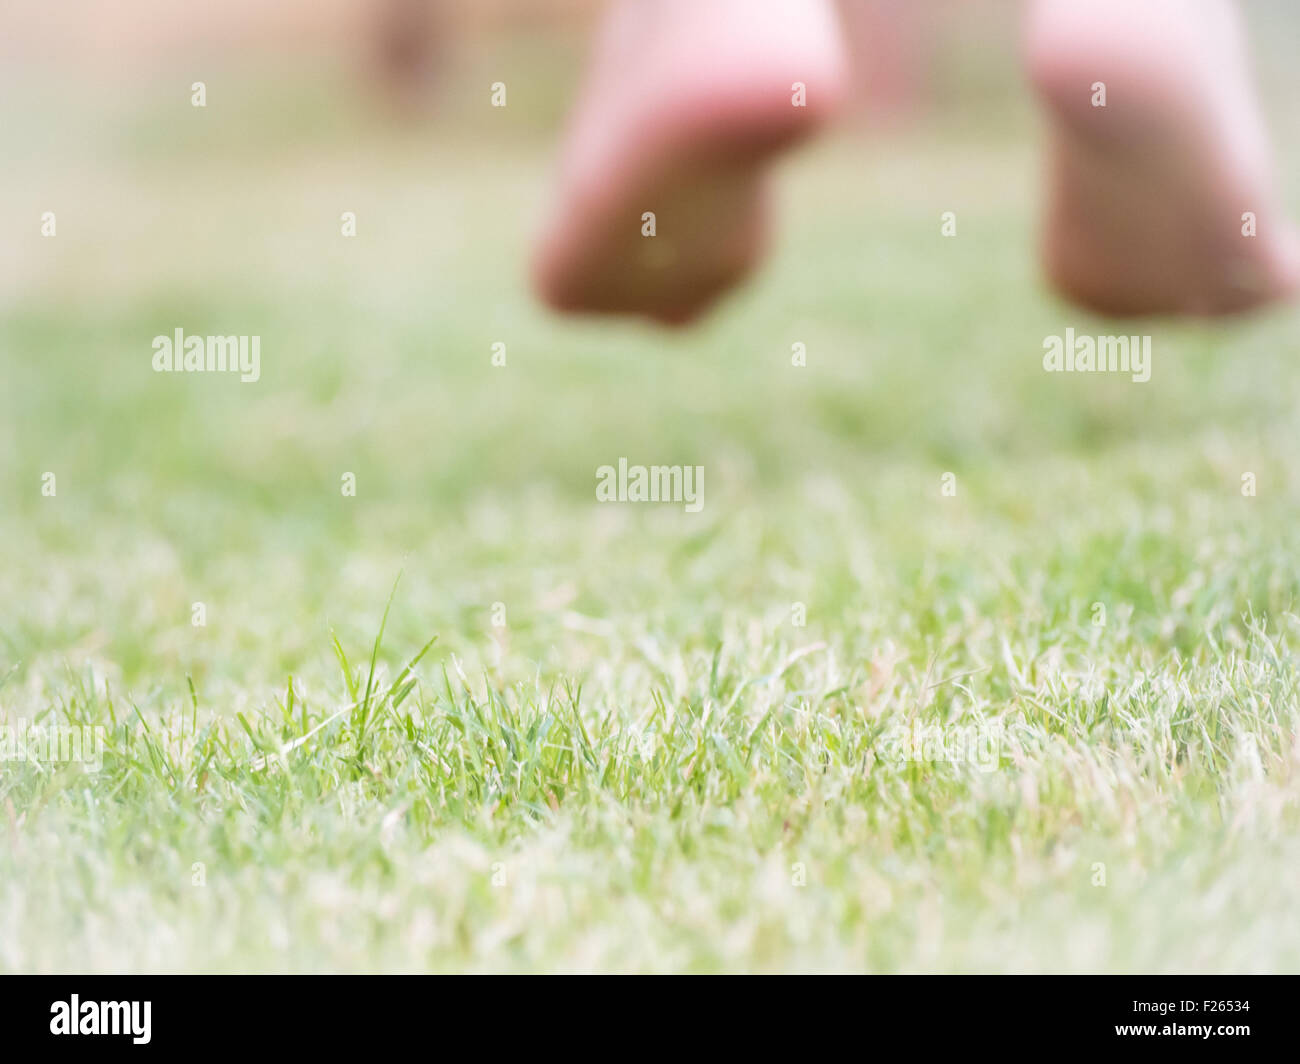 jump on the grass for happiness. Blur image  with feet of kid that jump on the grass. Concept of happiness - Stock Image